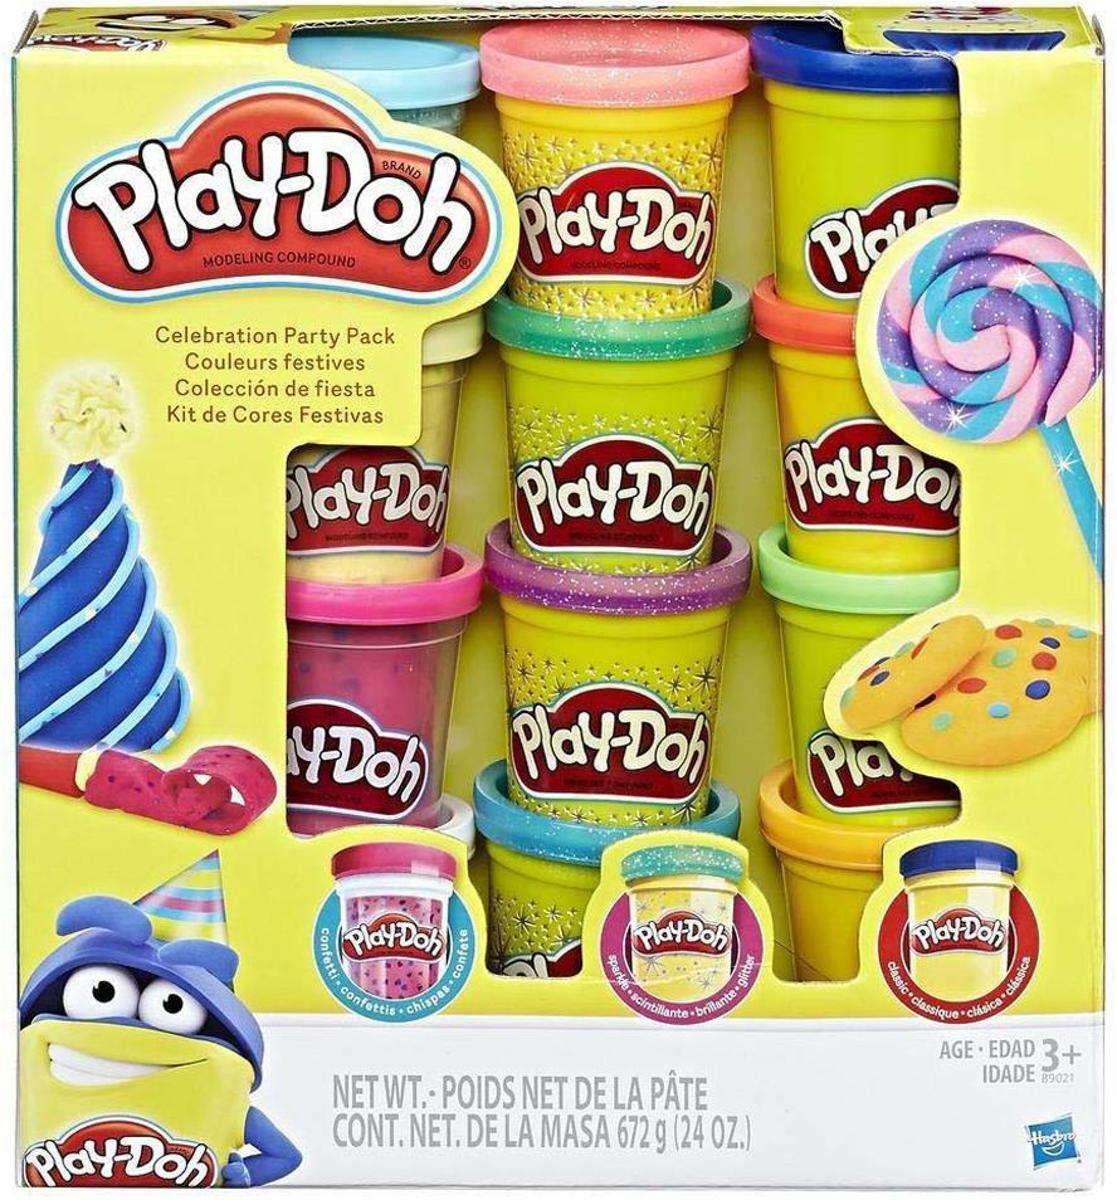 Play-doh Celebration Party Pack